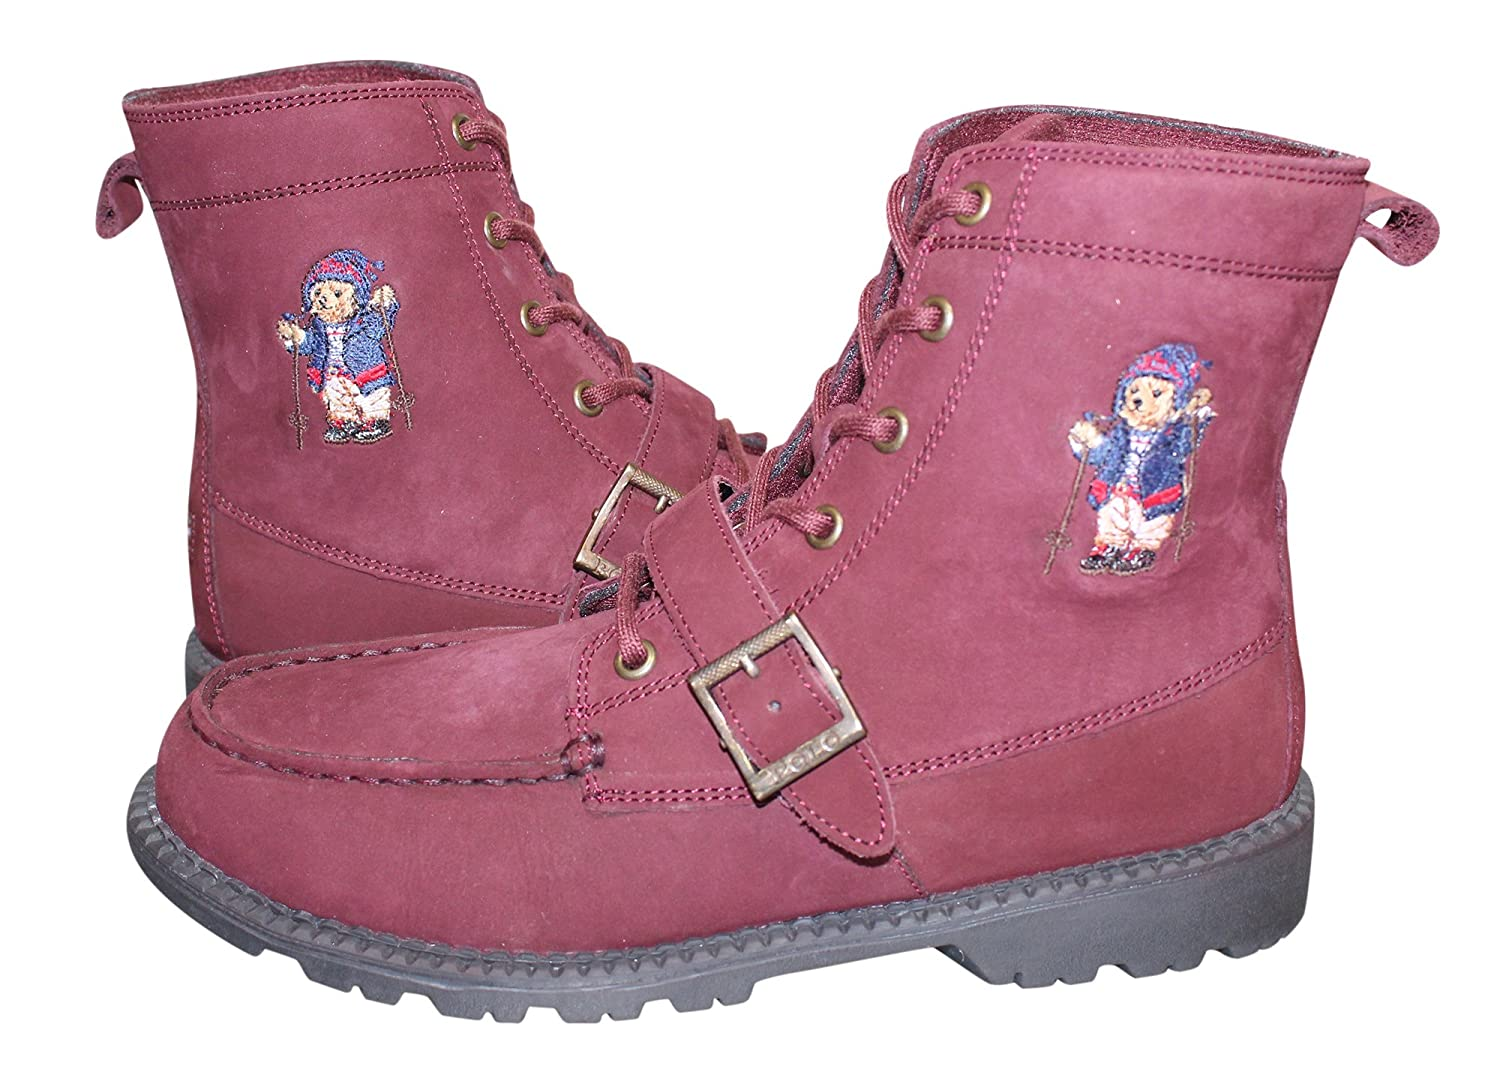 Polo Ralph Lauren  Ranger Hi Ii Fashion Boot B076ZZ9LF6 5 Medium US Big Kid|Burgundy Nubuck